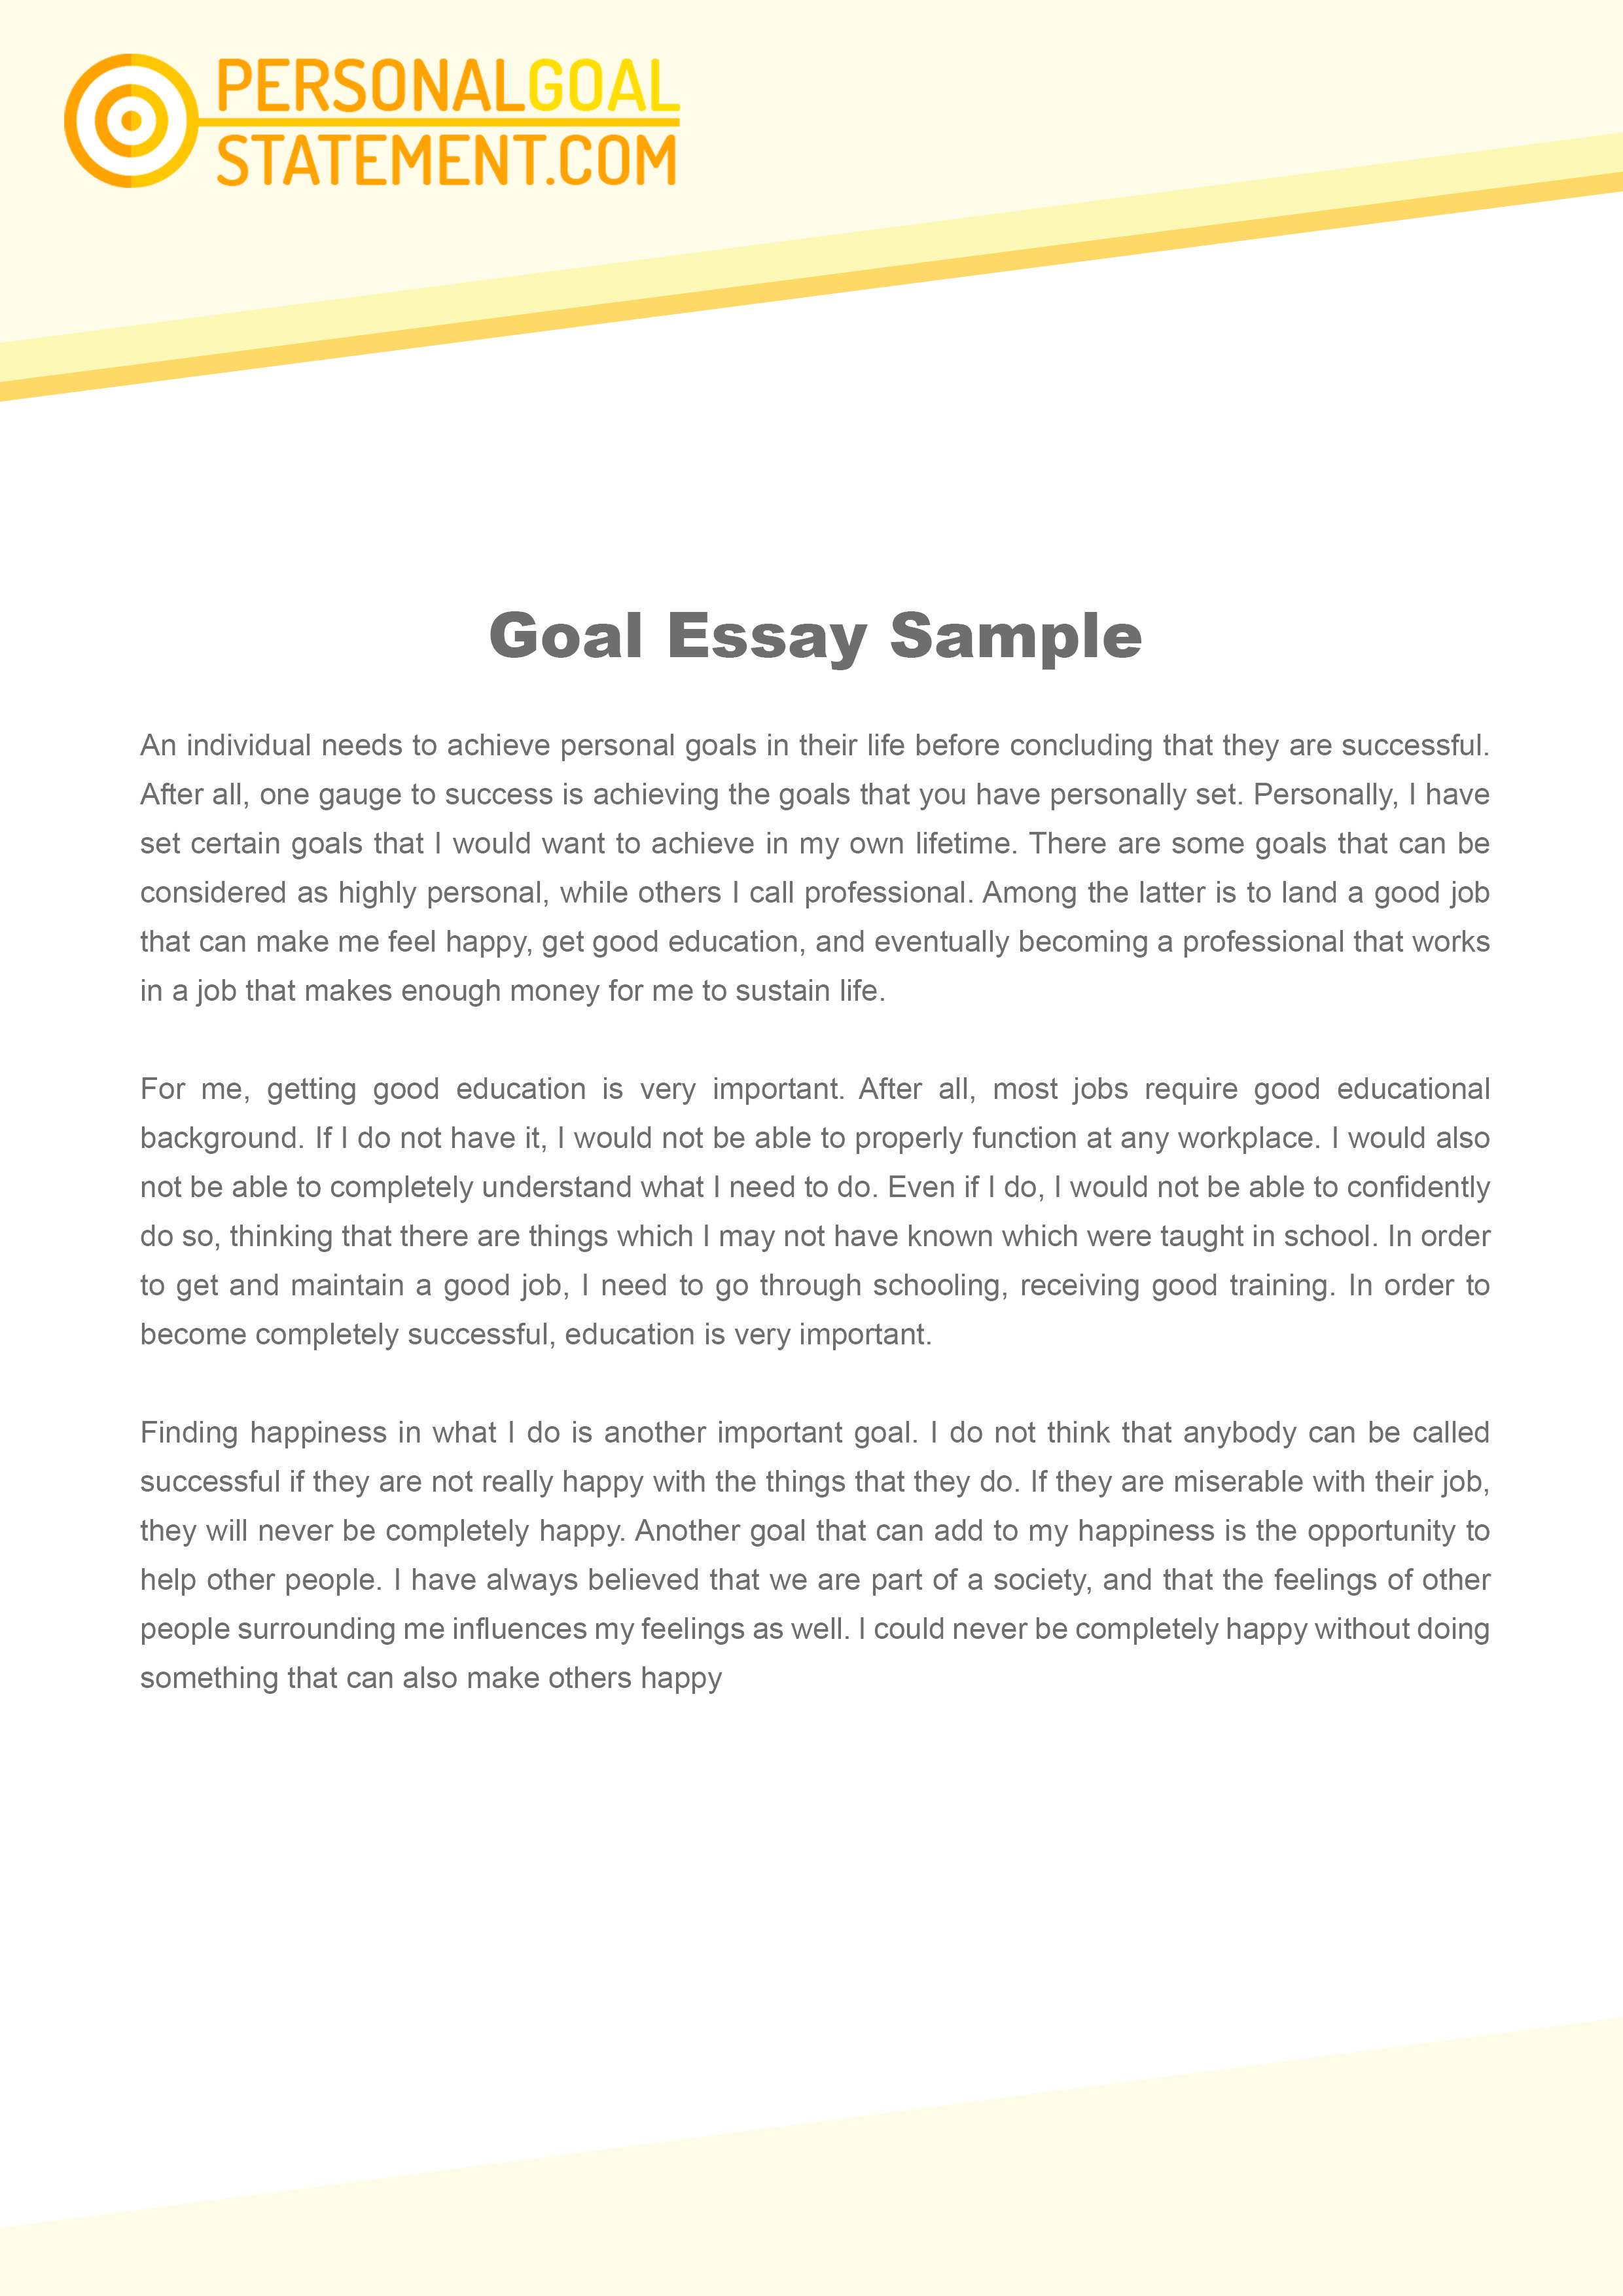 011 Essay Example Goals Career Goal Uniforms Debate Personal Examples L Awesome Sample Graduate School Future For College High Full